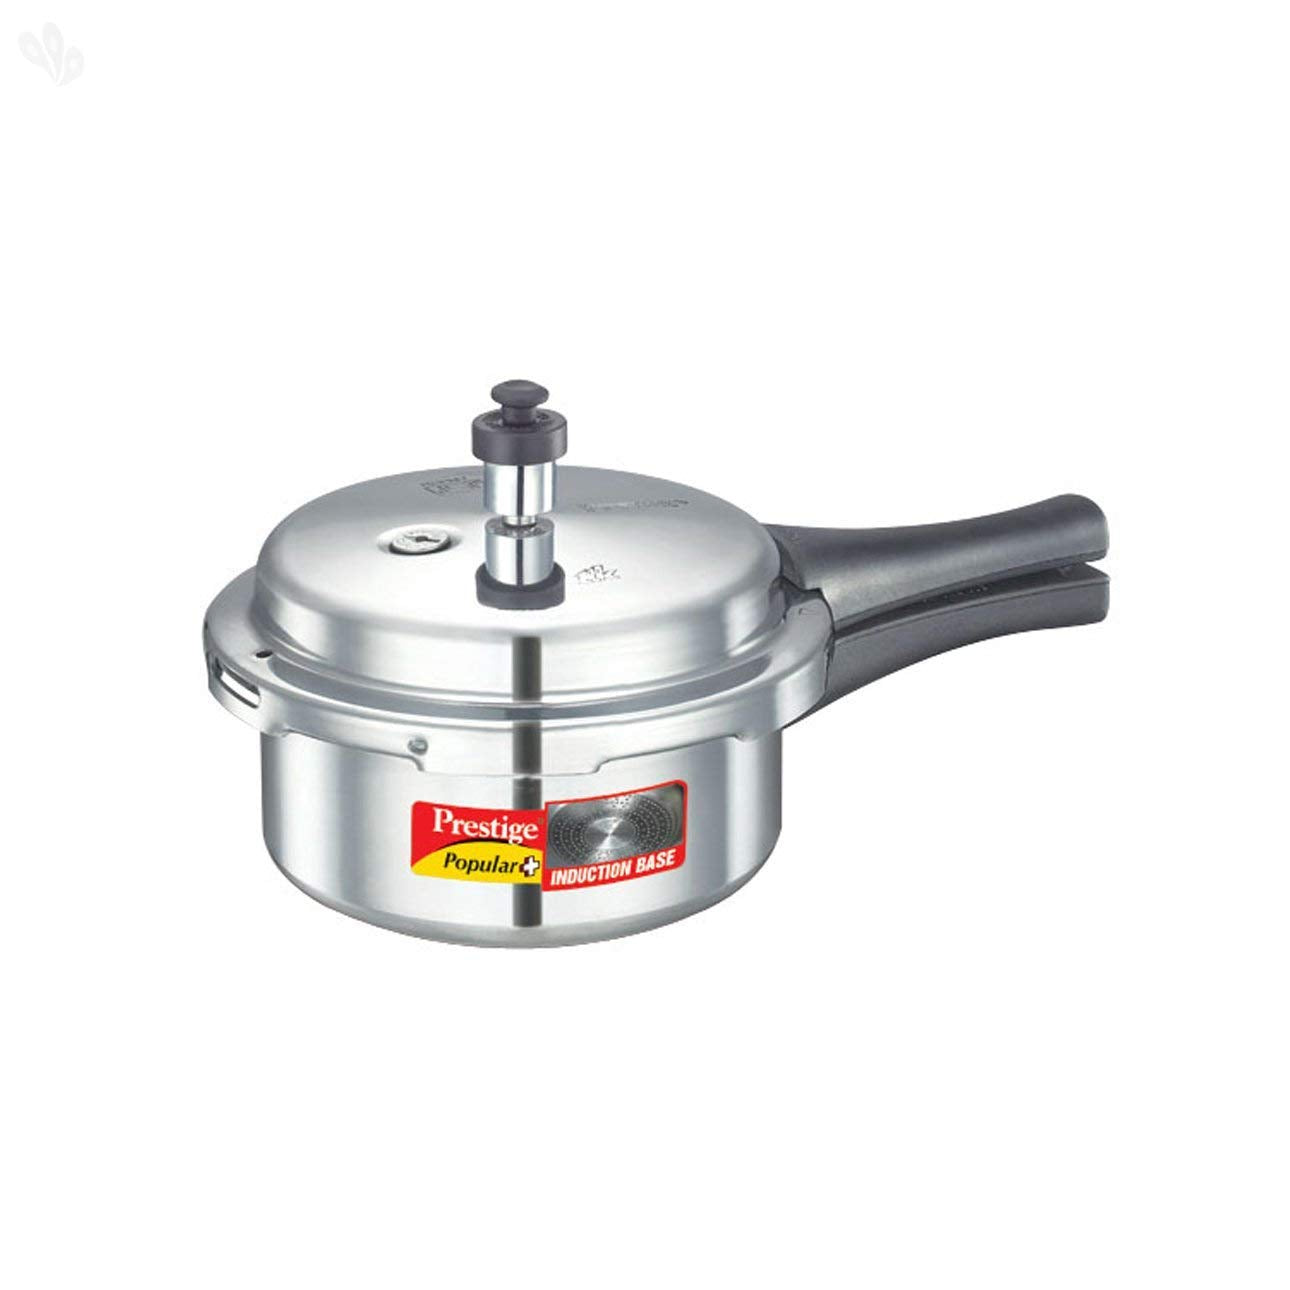 Prestige Popular Plus Induction Base Pressure Cooker, 2 Litres, Silver - Kasa's Mart